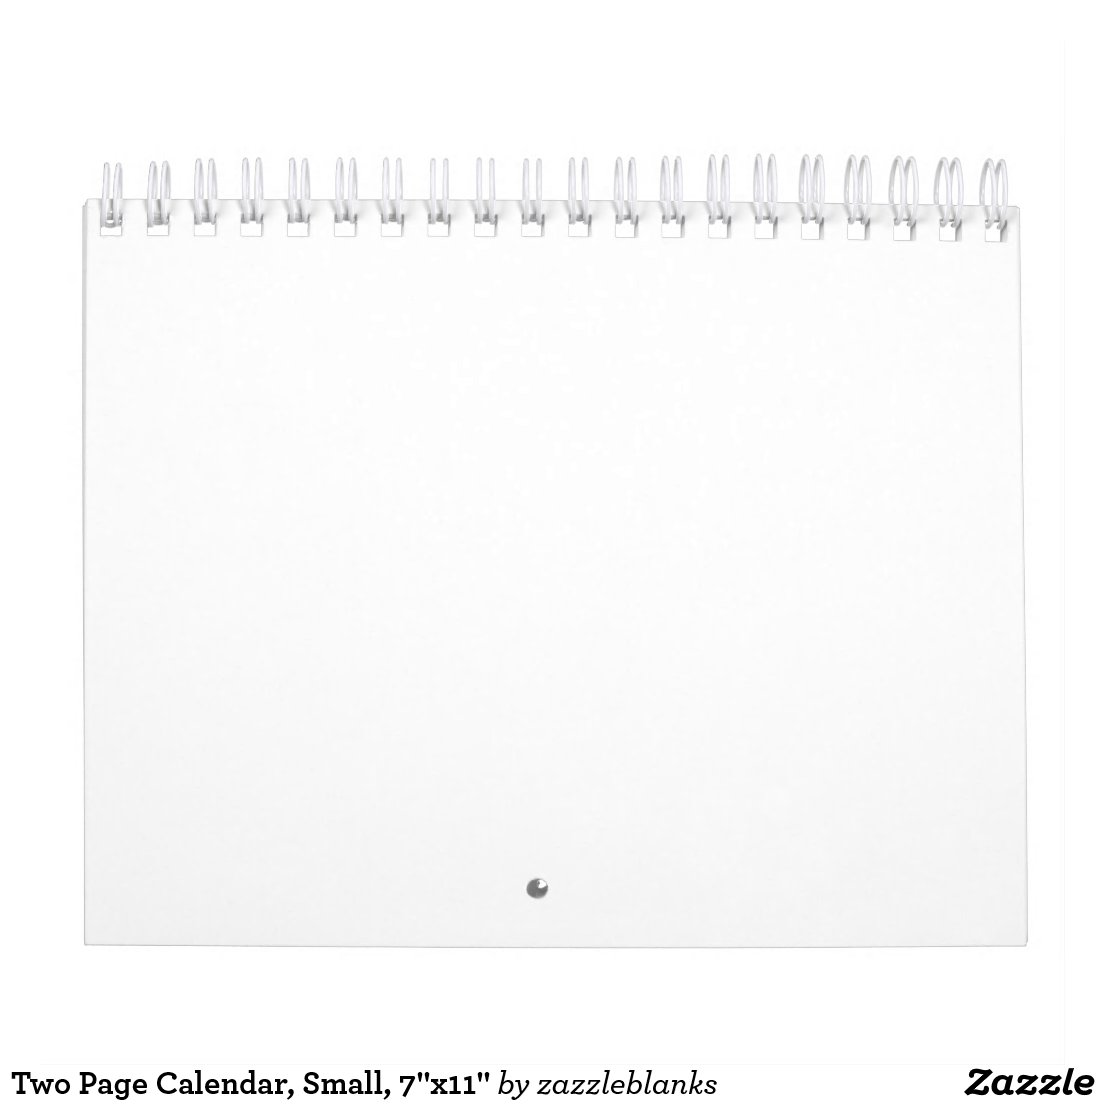 Two Page Calendar, Small